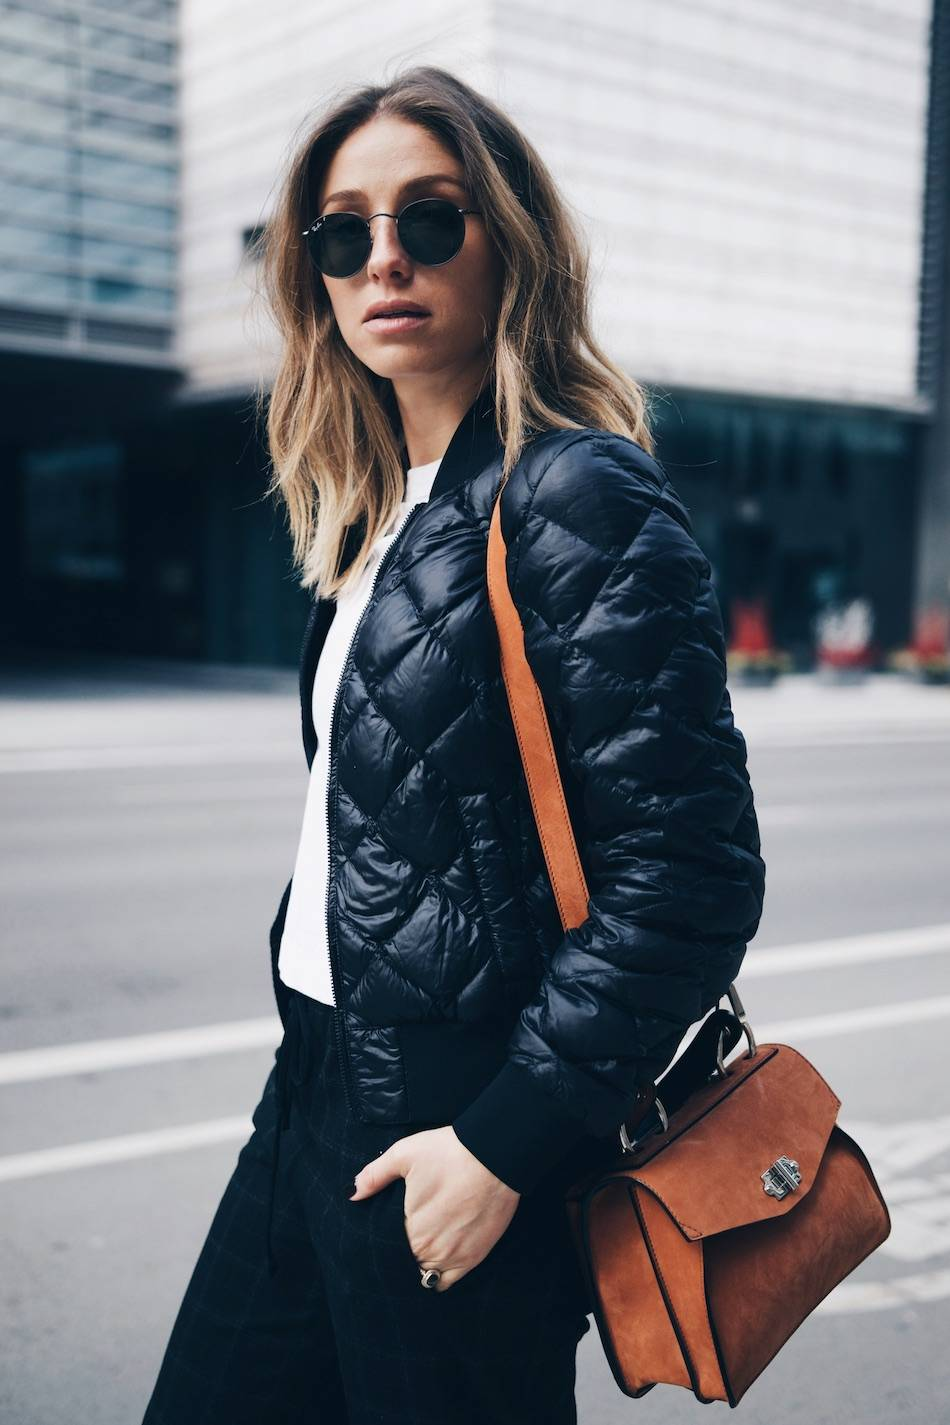 Style and beauty blogger Jill Lansky of The August Diaries on 5 ways to start your morning right in Adidas stan smith, bomber jacket, white tee, Proenza Schouler Hava bag